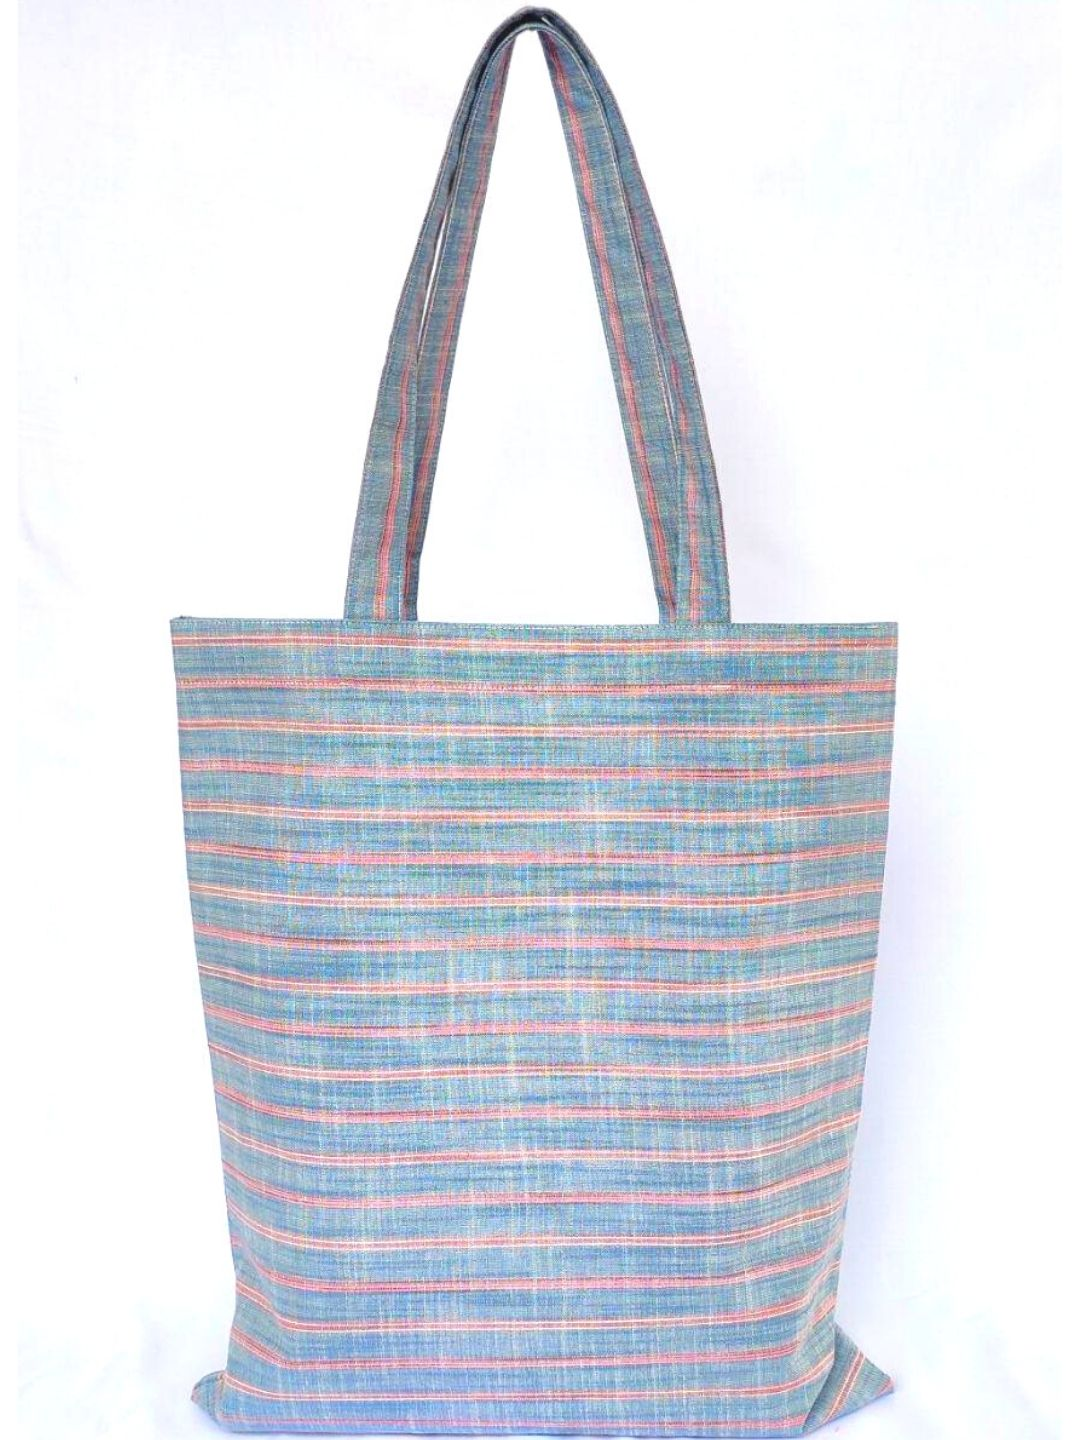 Blue Striped Handbag Bag